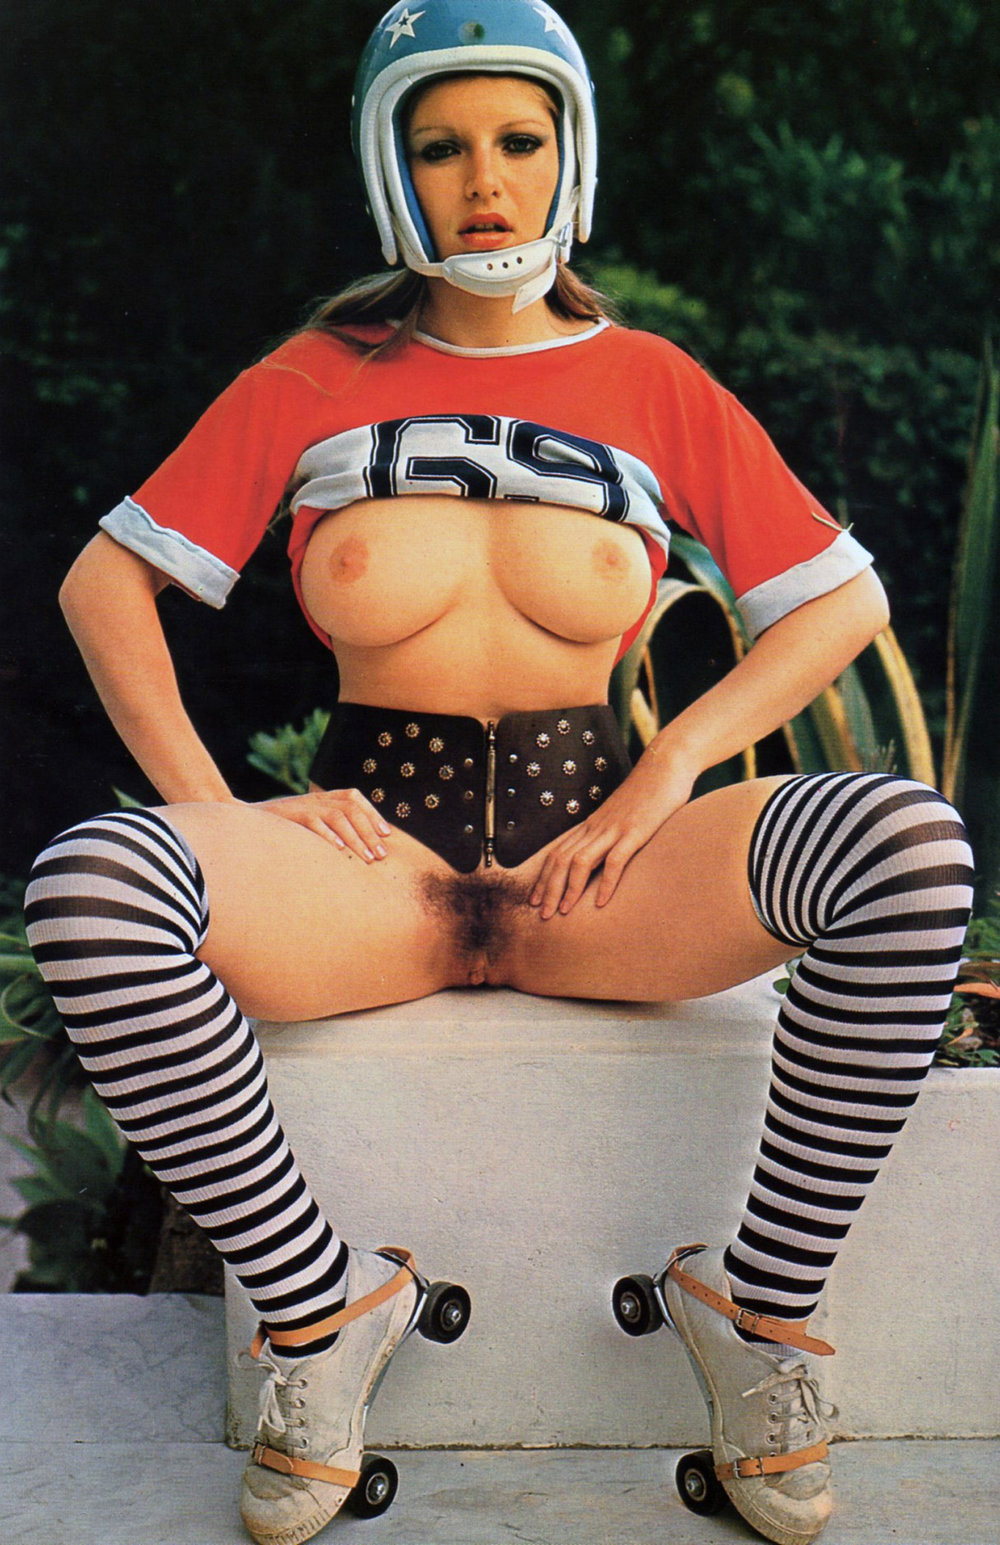 Ingrid-D'Eve-sexy-girls-magazine-1979.jpg